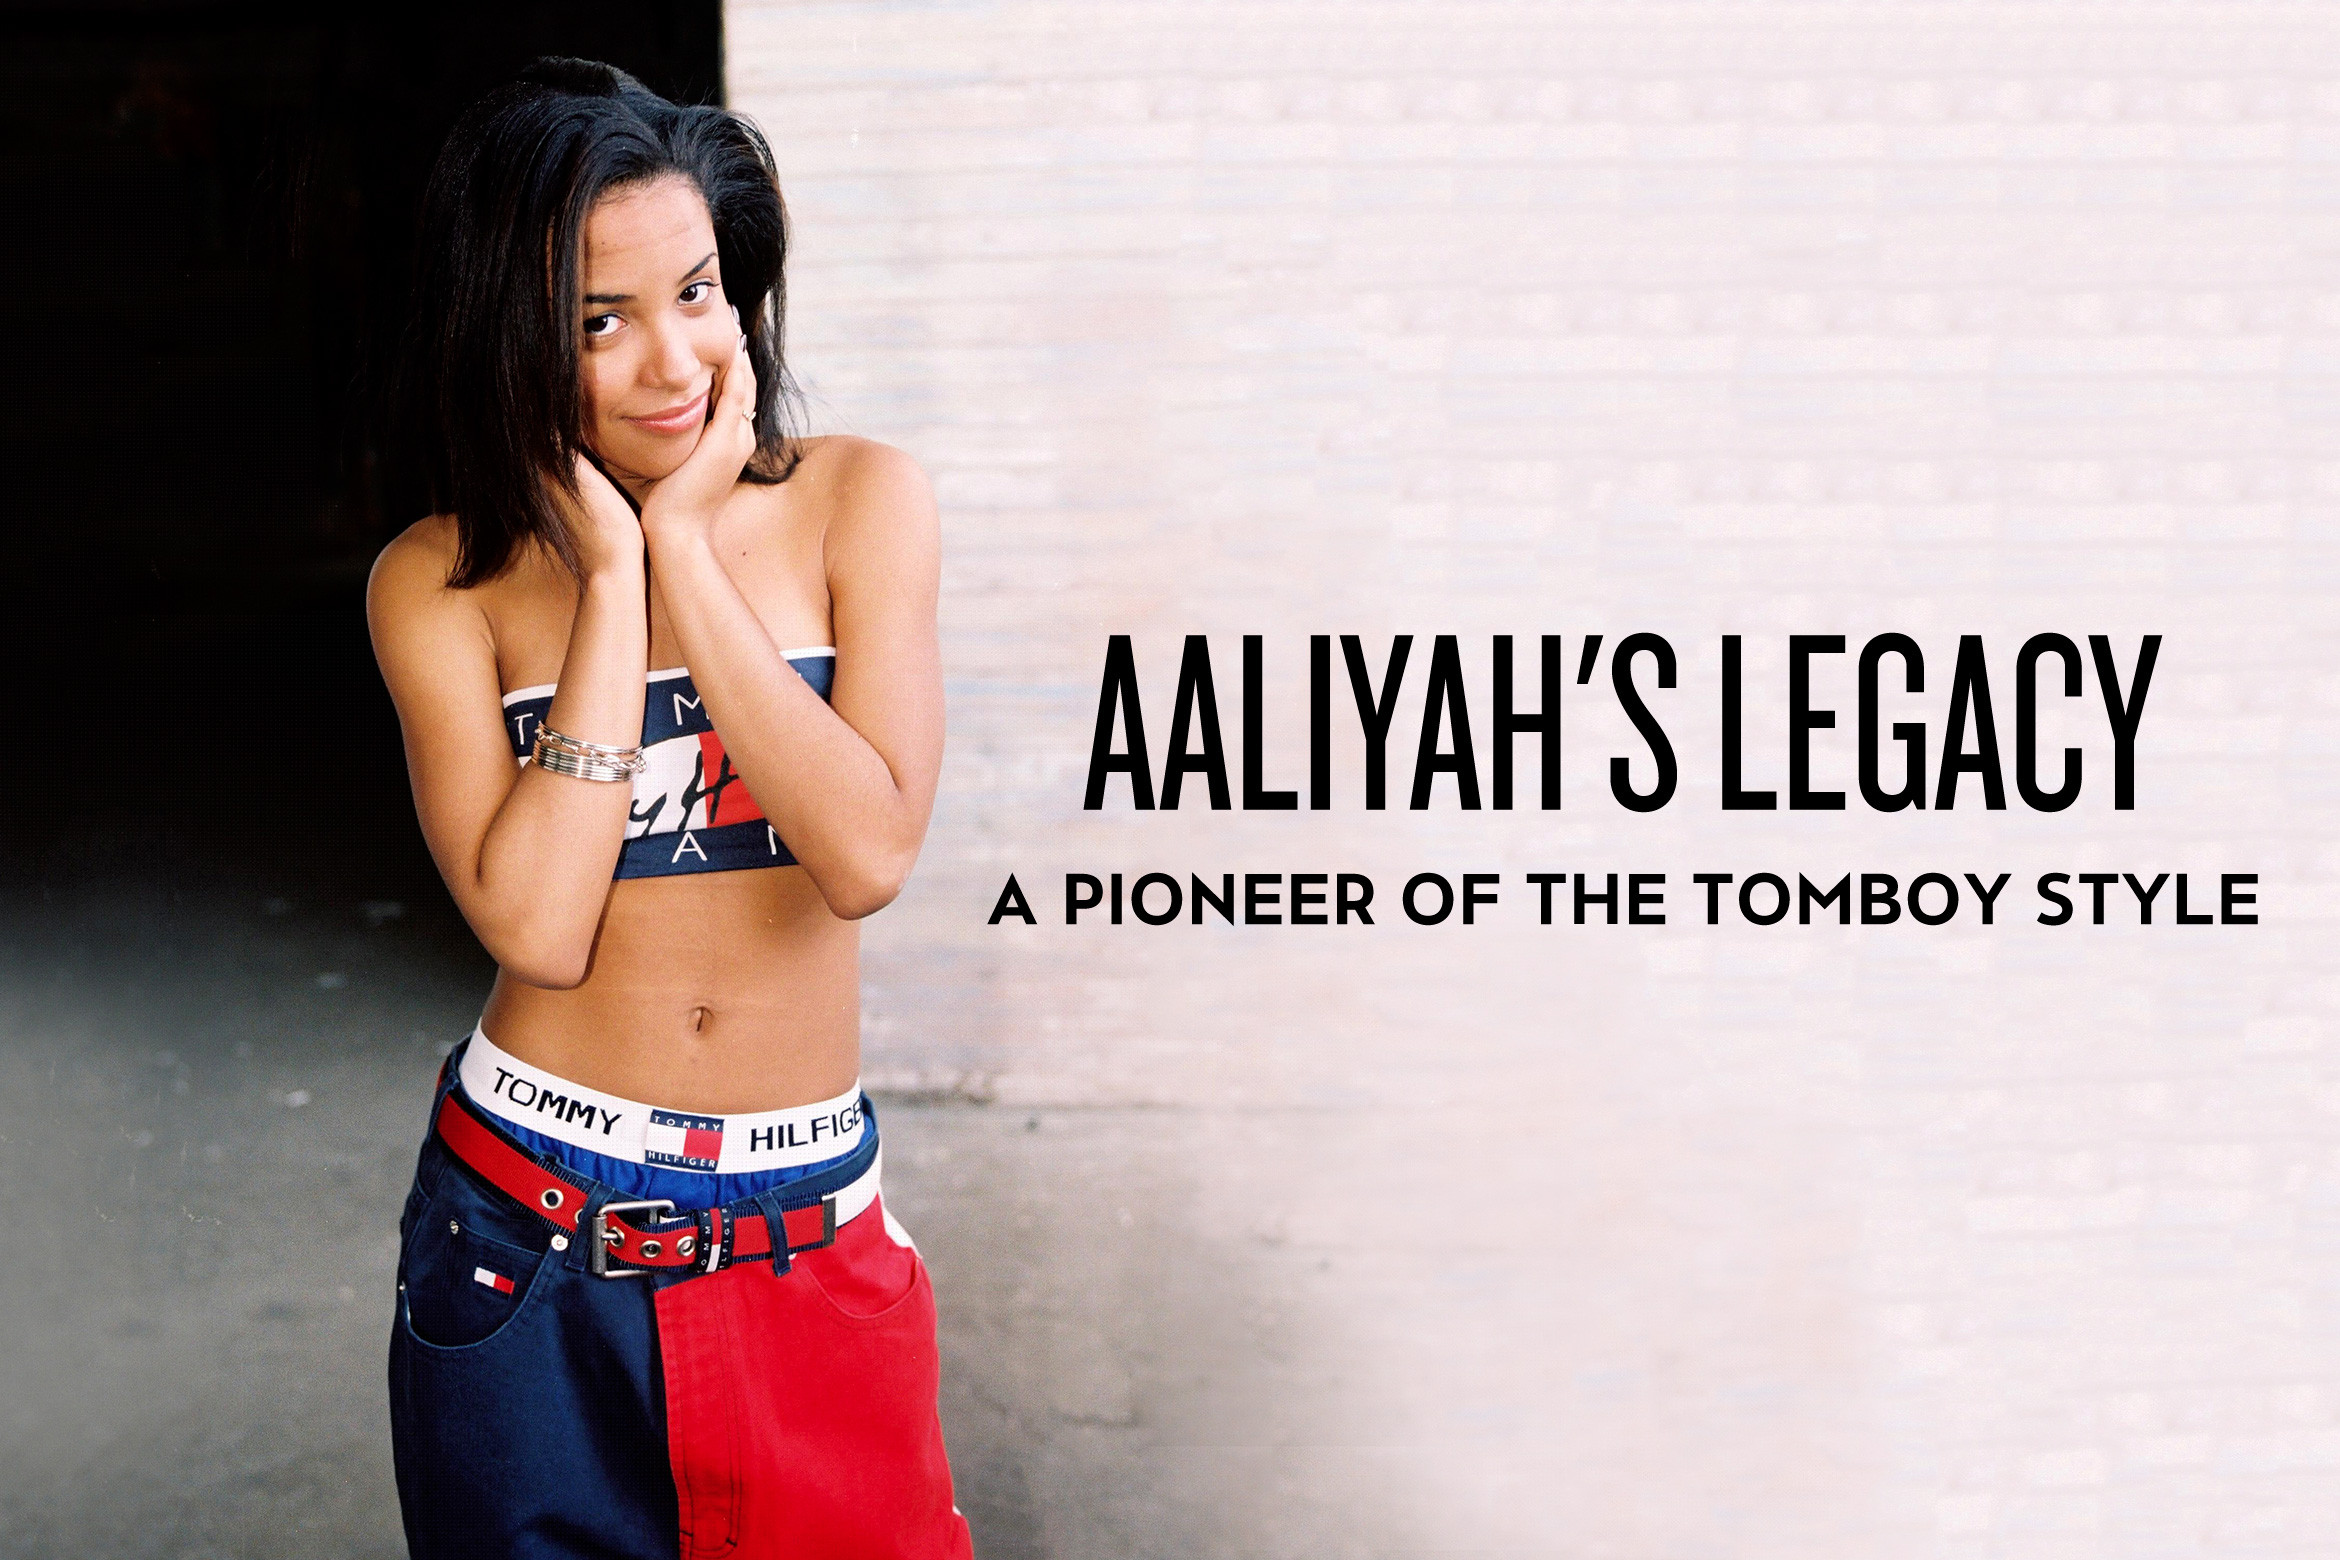 Aaliyah\u0027s Legacy A Pioneer of the Tomboy Style